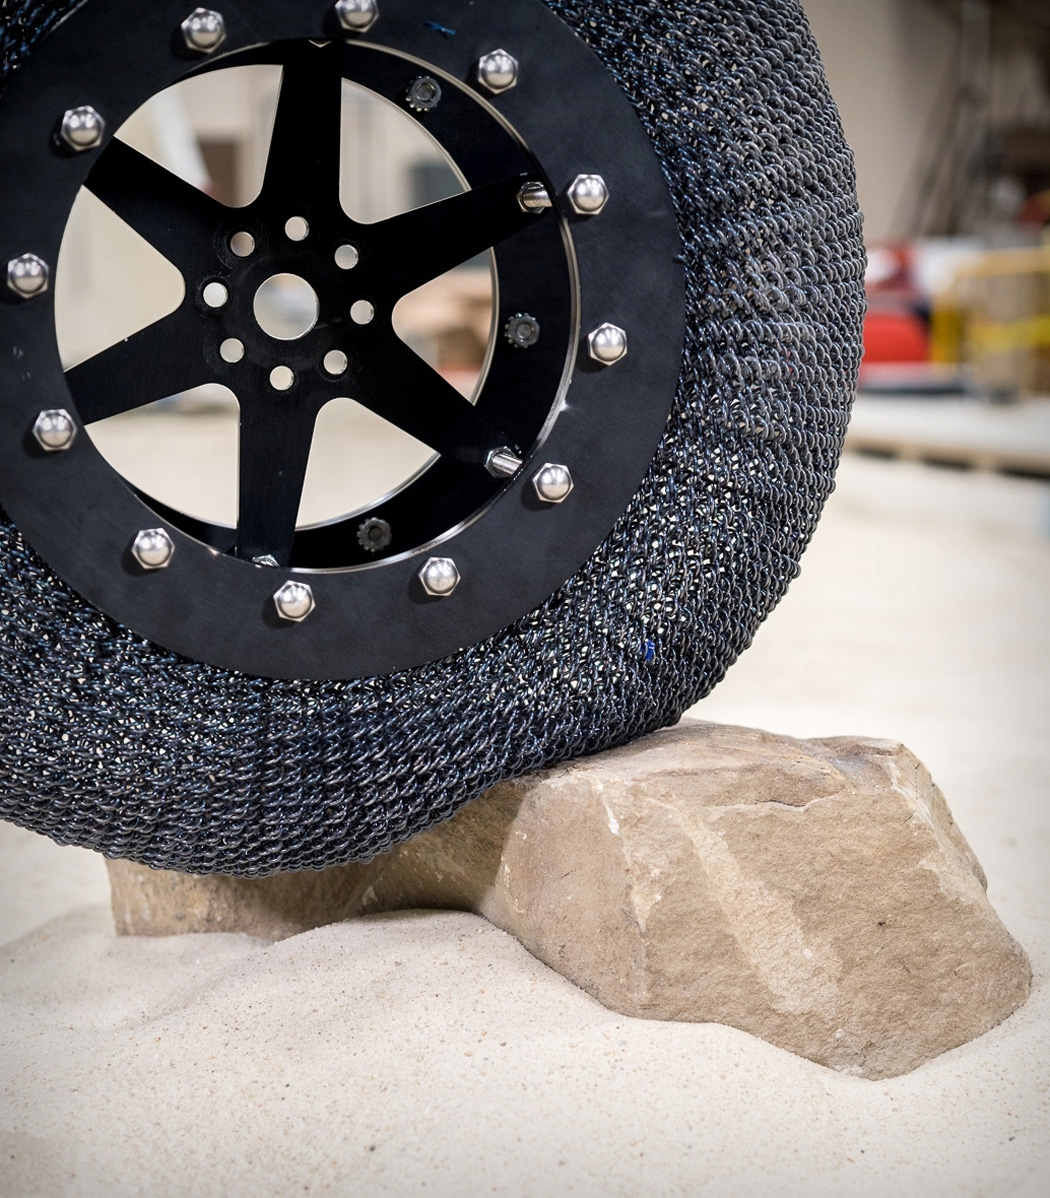 nasa_lunar_tire_01